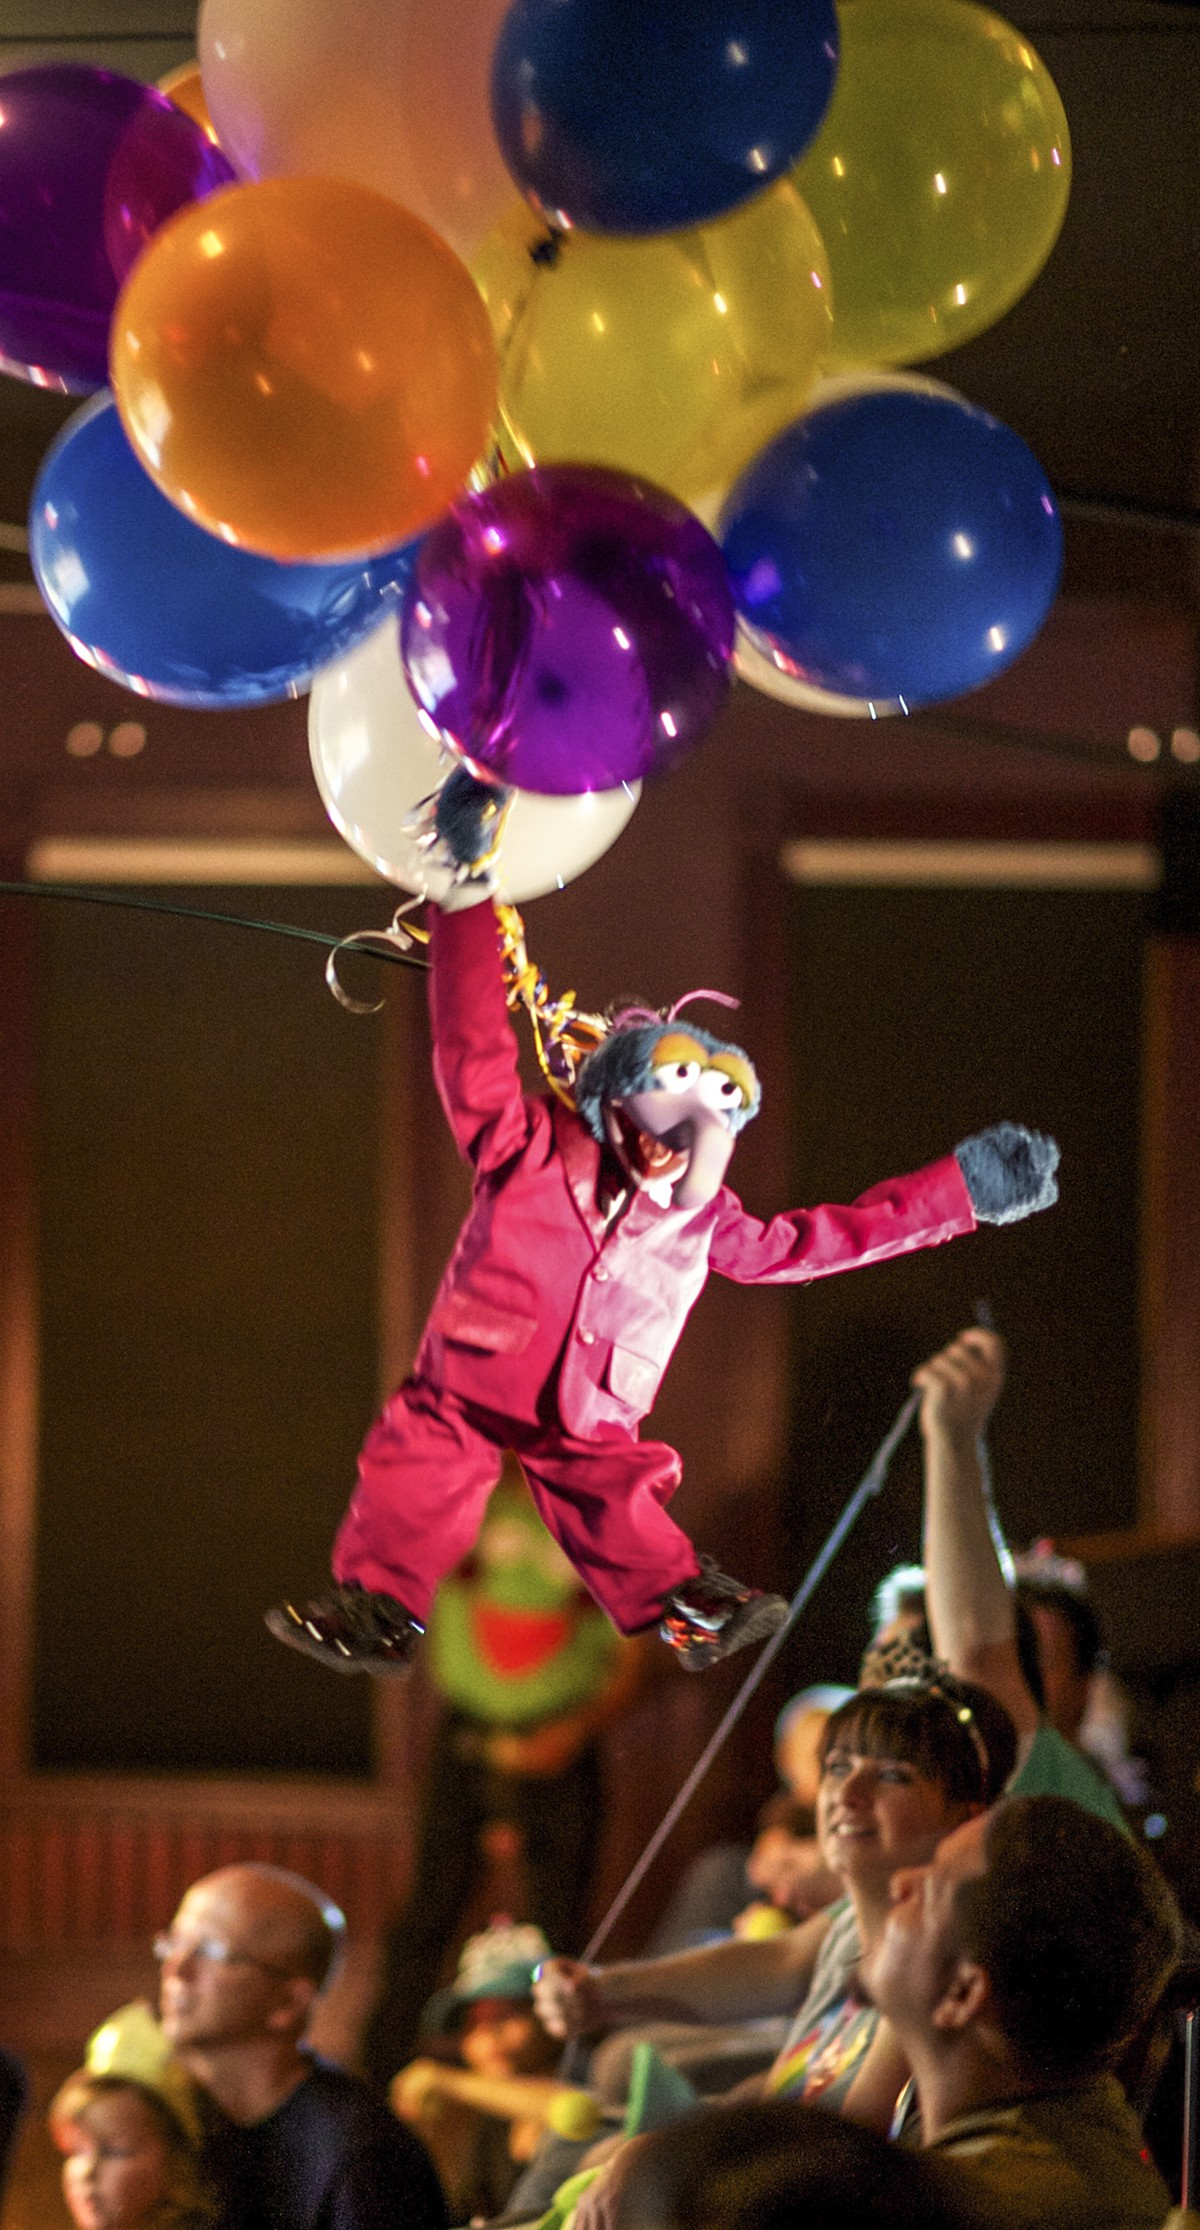 sing_along_with_the_muppet_movie_-_march_10-12.jpg